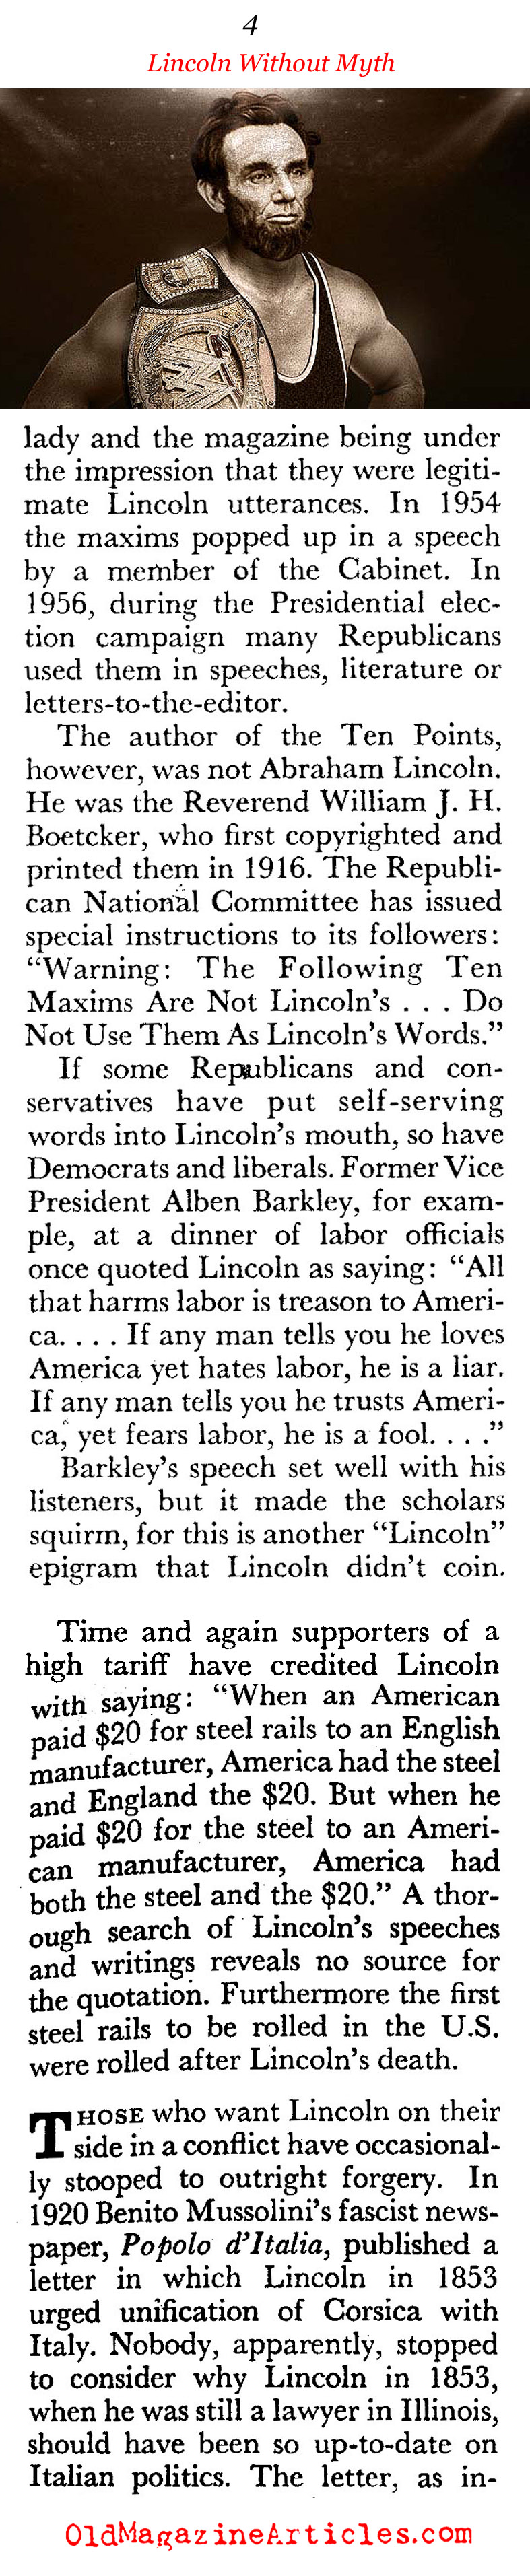 Lincoln Without the Myths (Coronet Magazine, 1961)